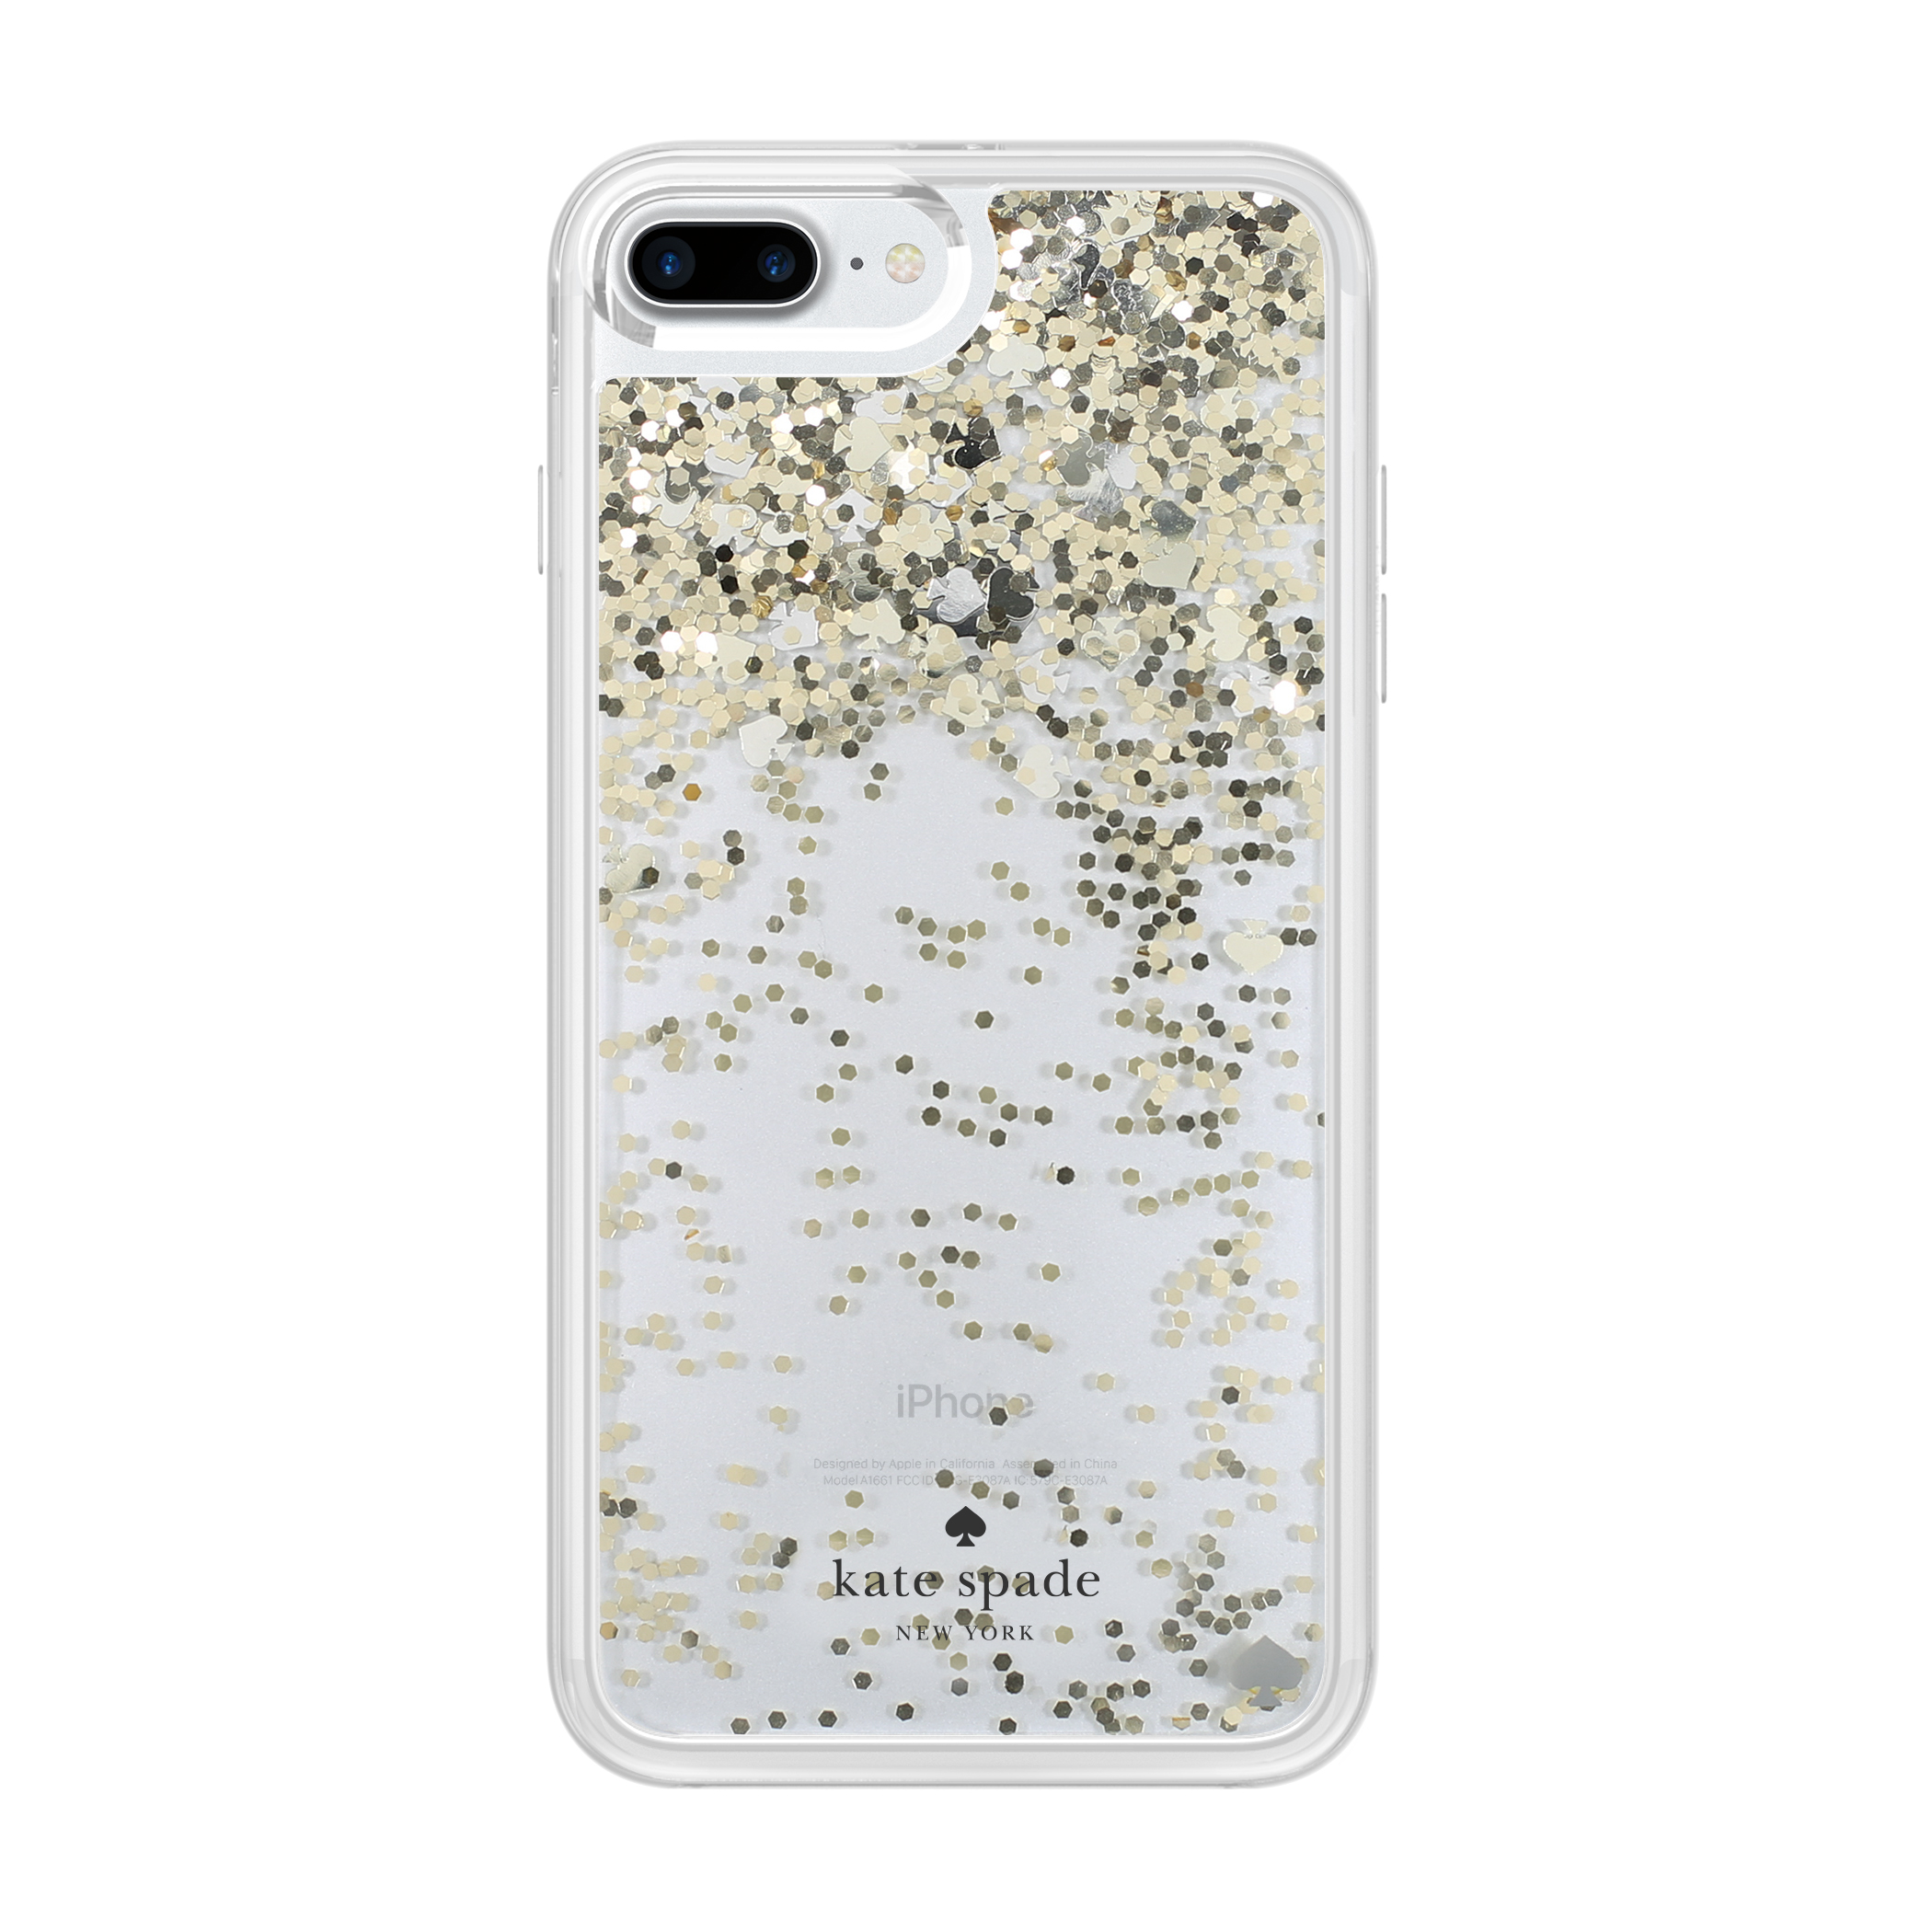 sports shoes 79a44 b31a6 Kate Spade New York Liquid Glitter Case for iPhone 7 Plus - Spades Gold  Glitter/Silver Spades/Gold Spades